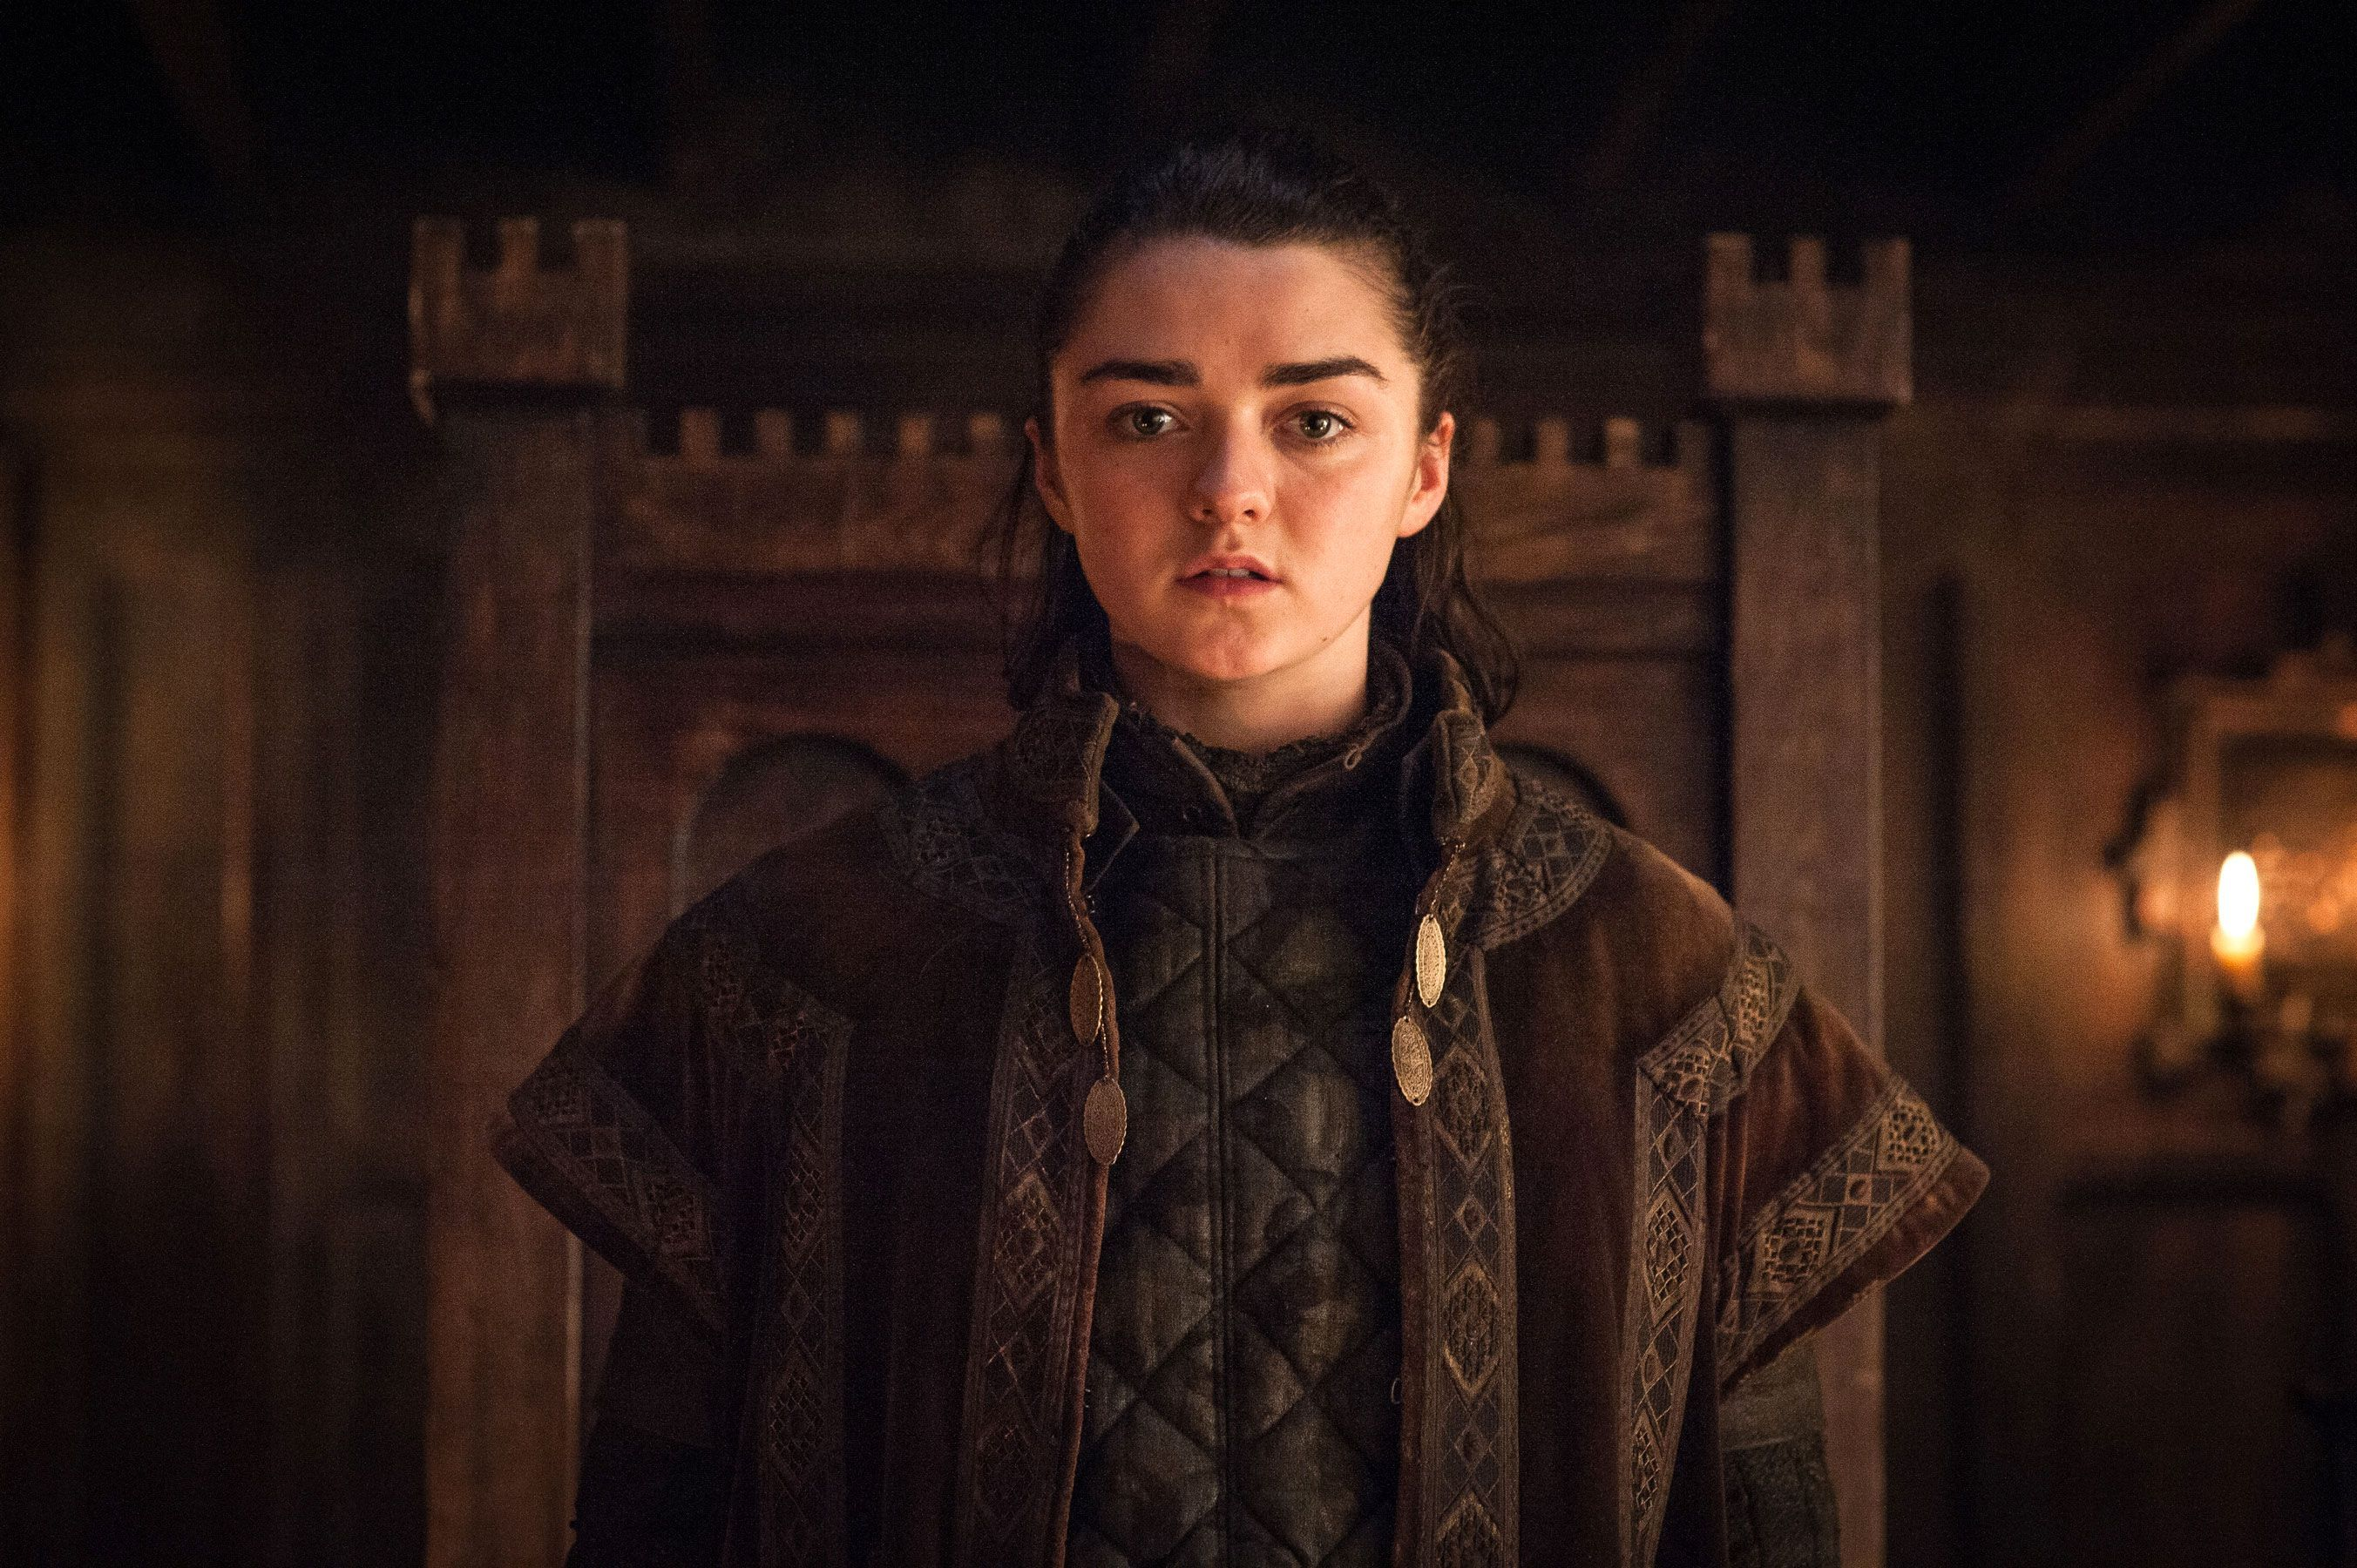 Maisie Williams reveals who Arya Stark teams up with in Game of Thrones s8